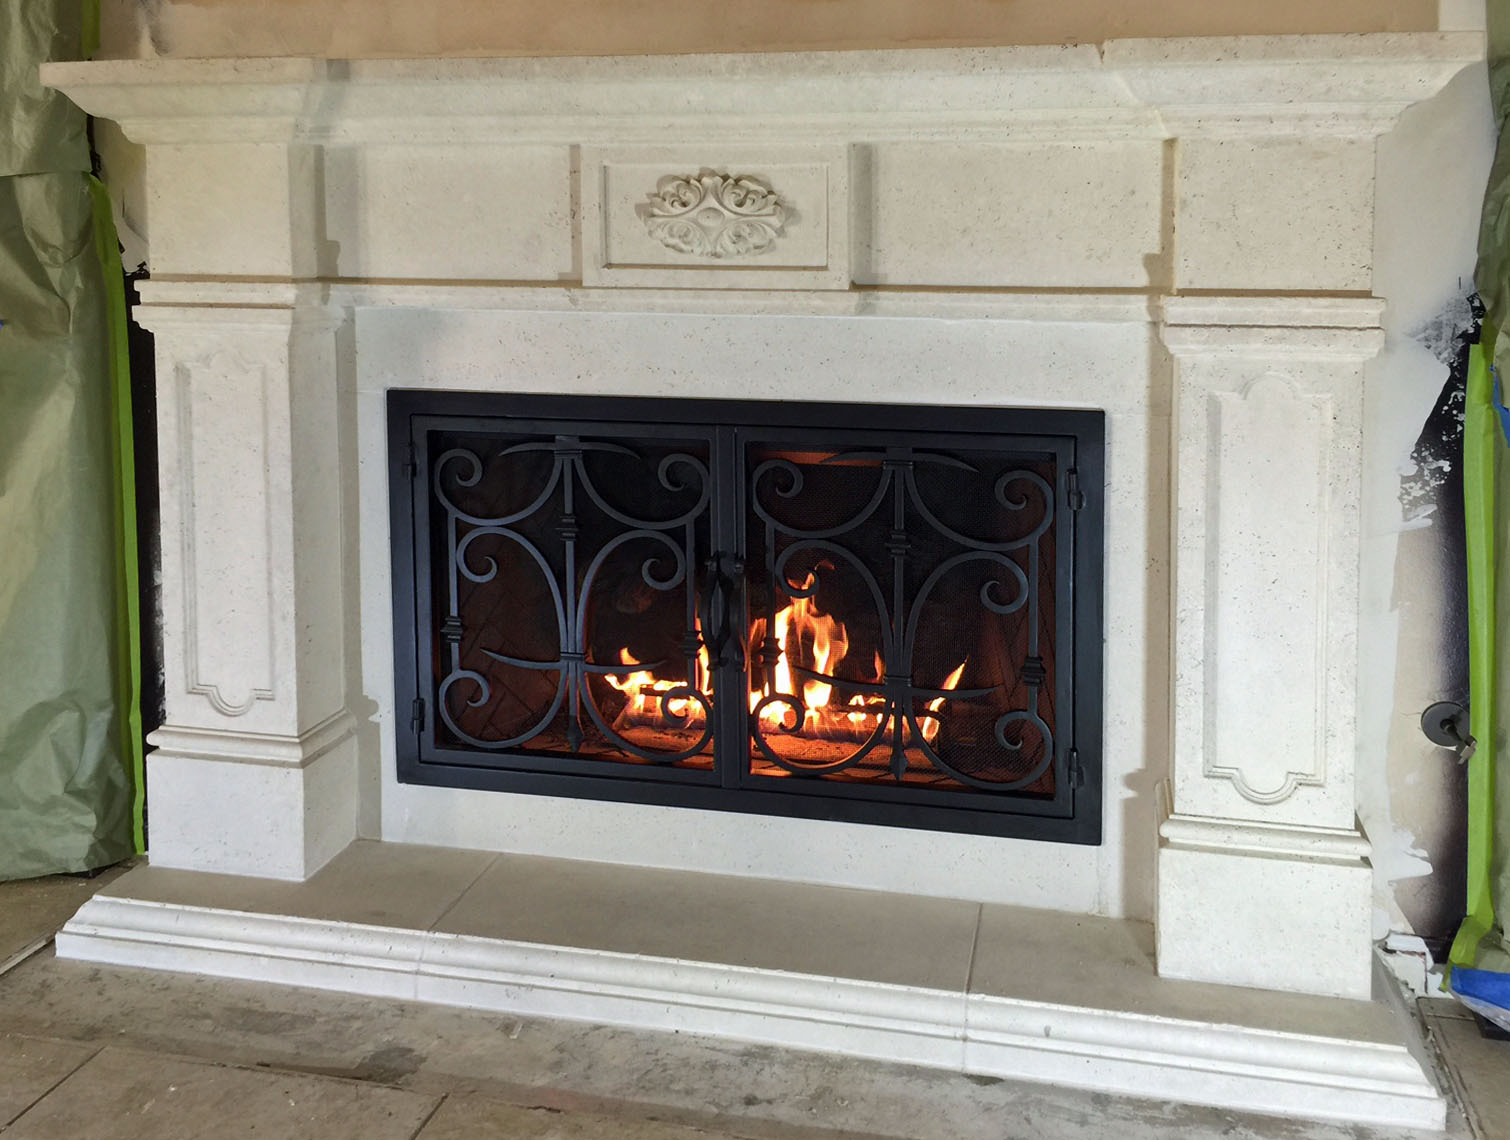 Mt231 Fireplace Mantels Fireplace Surrounds Iron